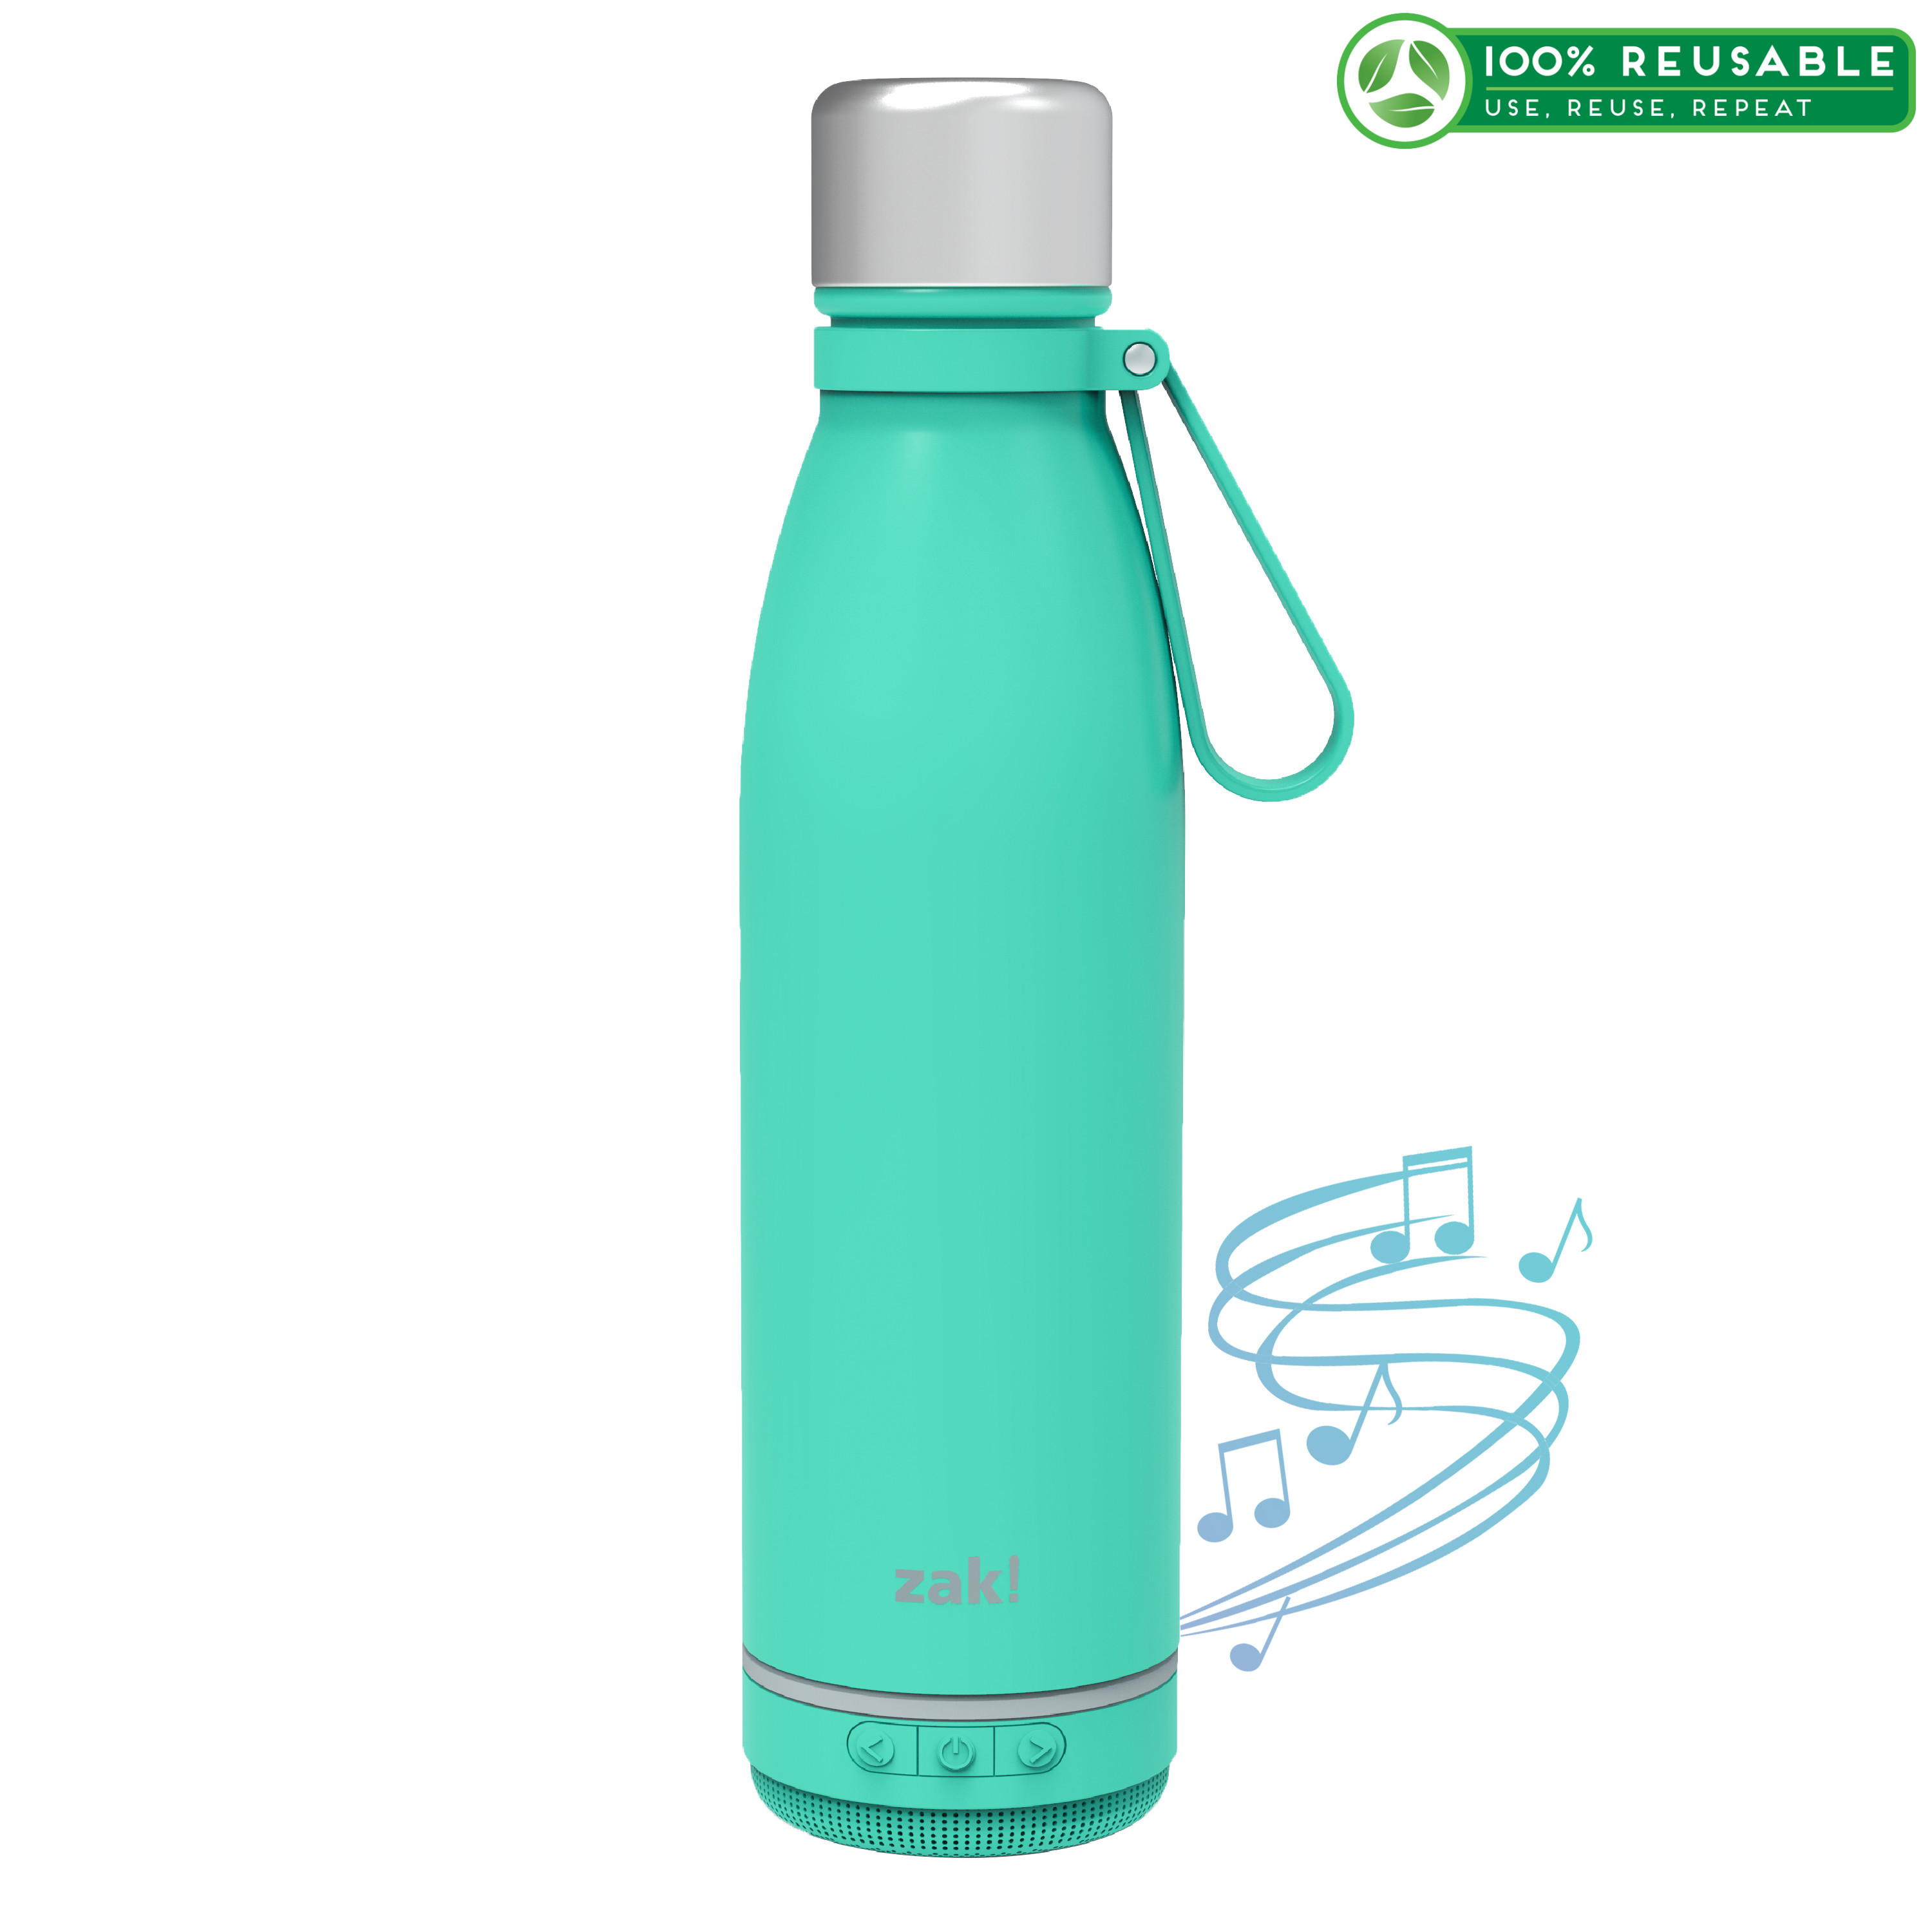 Zak Play 17.5 ounce Stainless Steel Tumbler with Bluetooth Speaker, Teal image